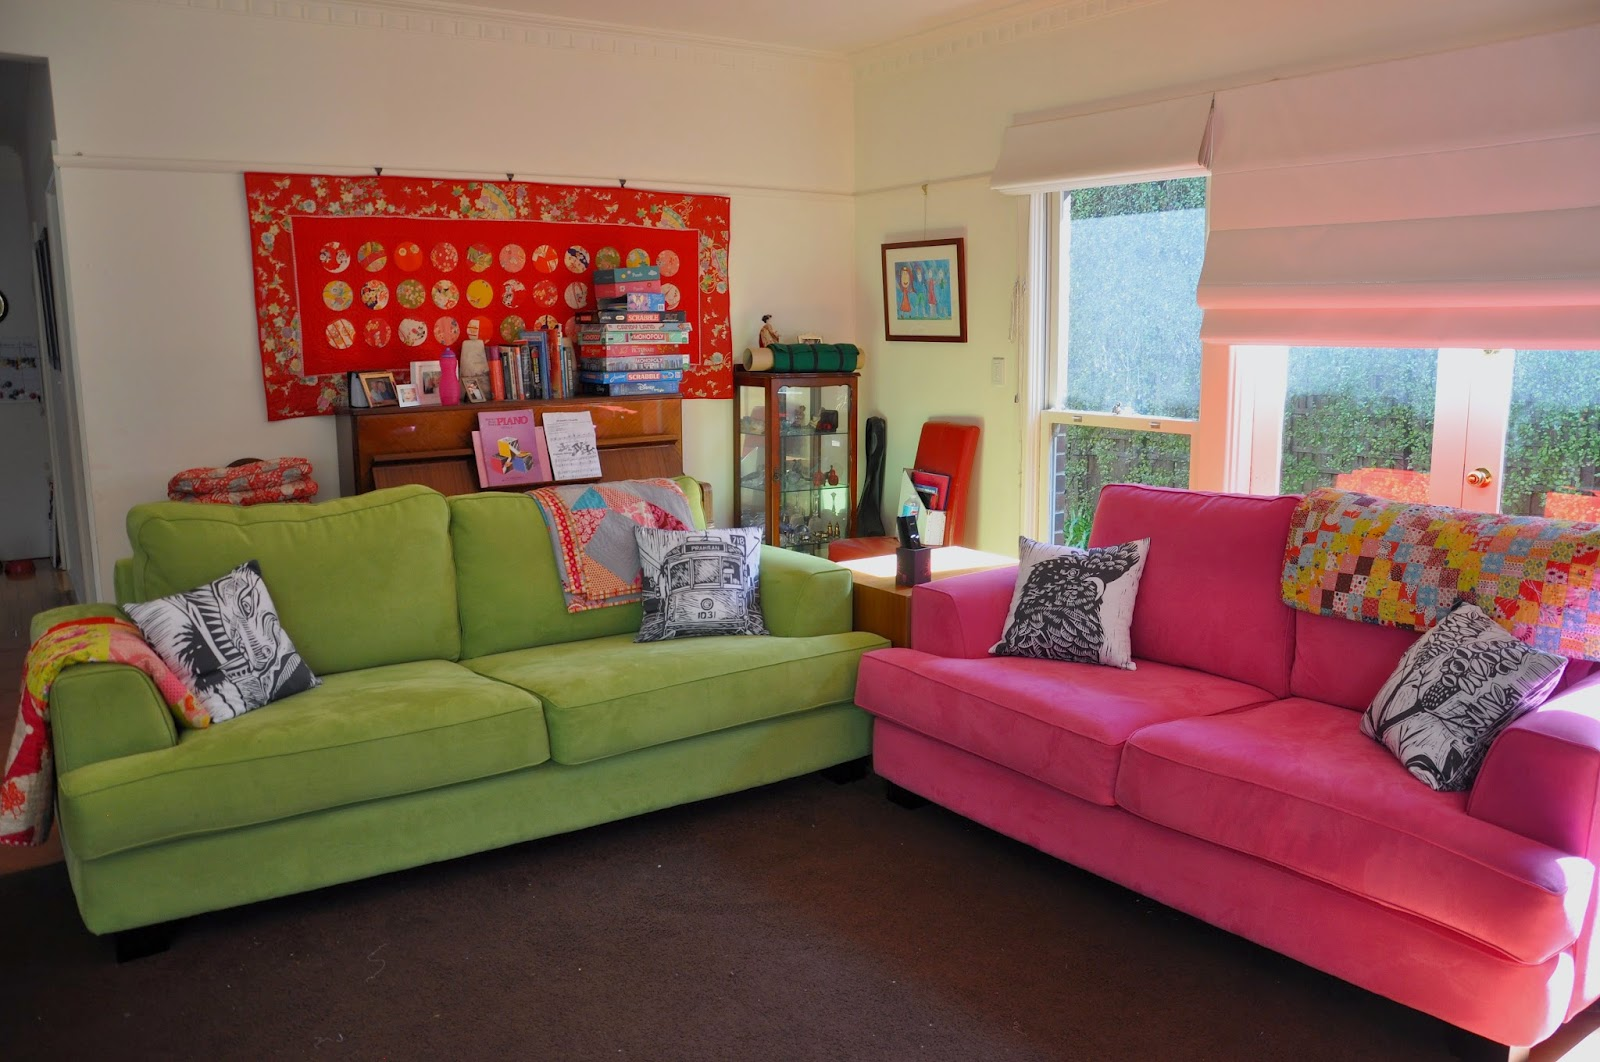 couches 2014. We\u0027re Not Afraid Of Color At Our Place ;-) Couches 2014